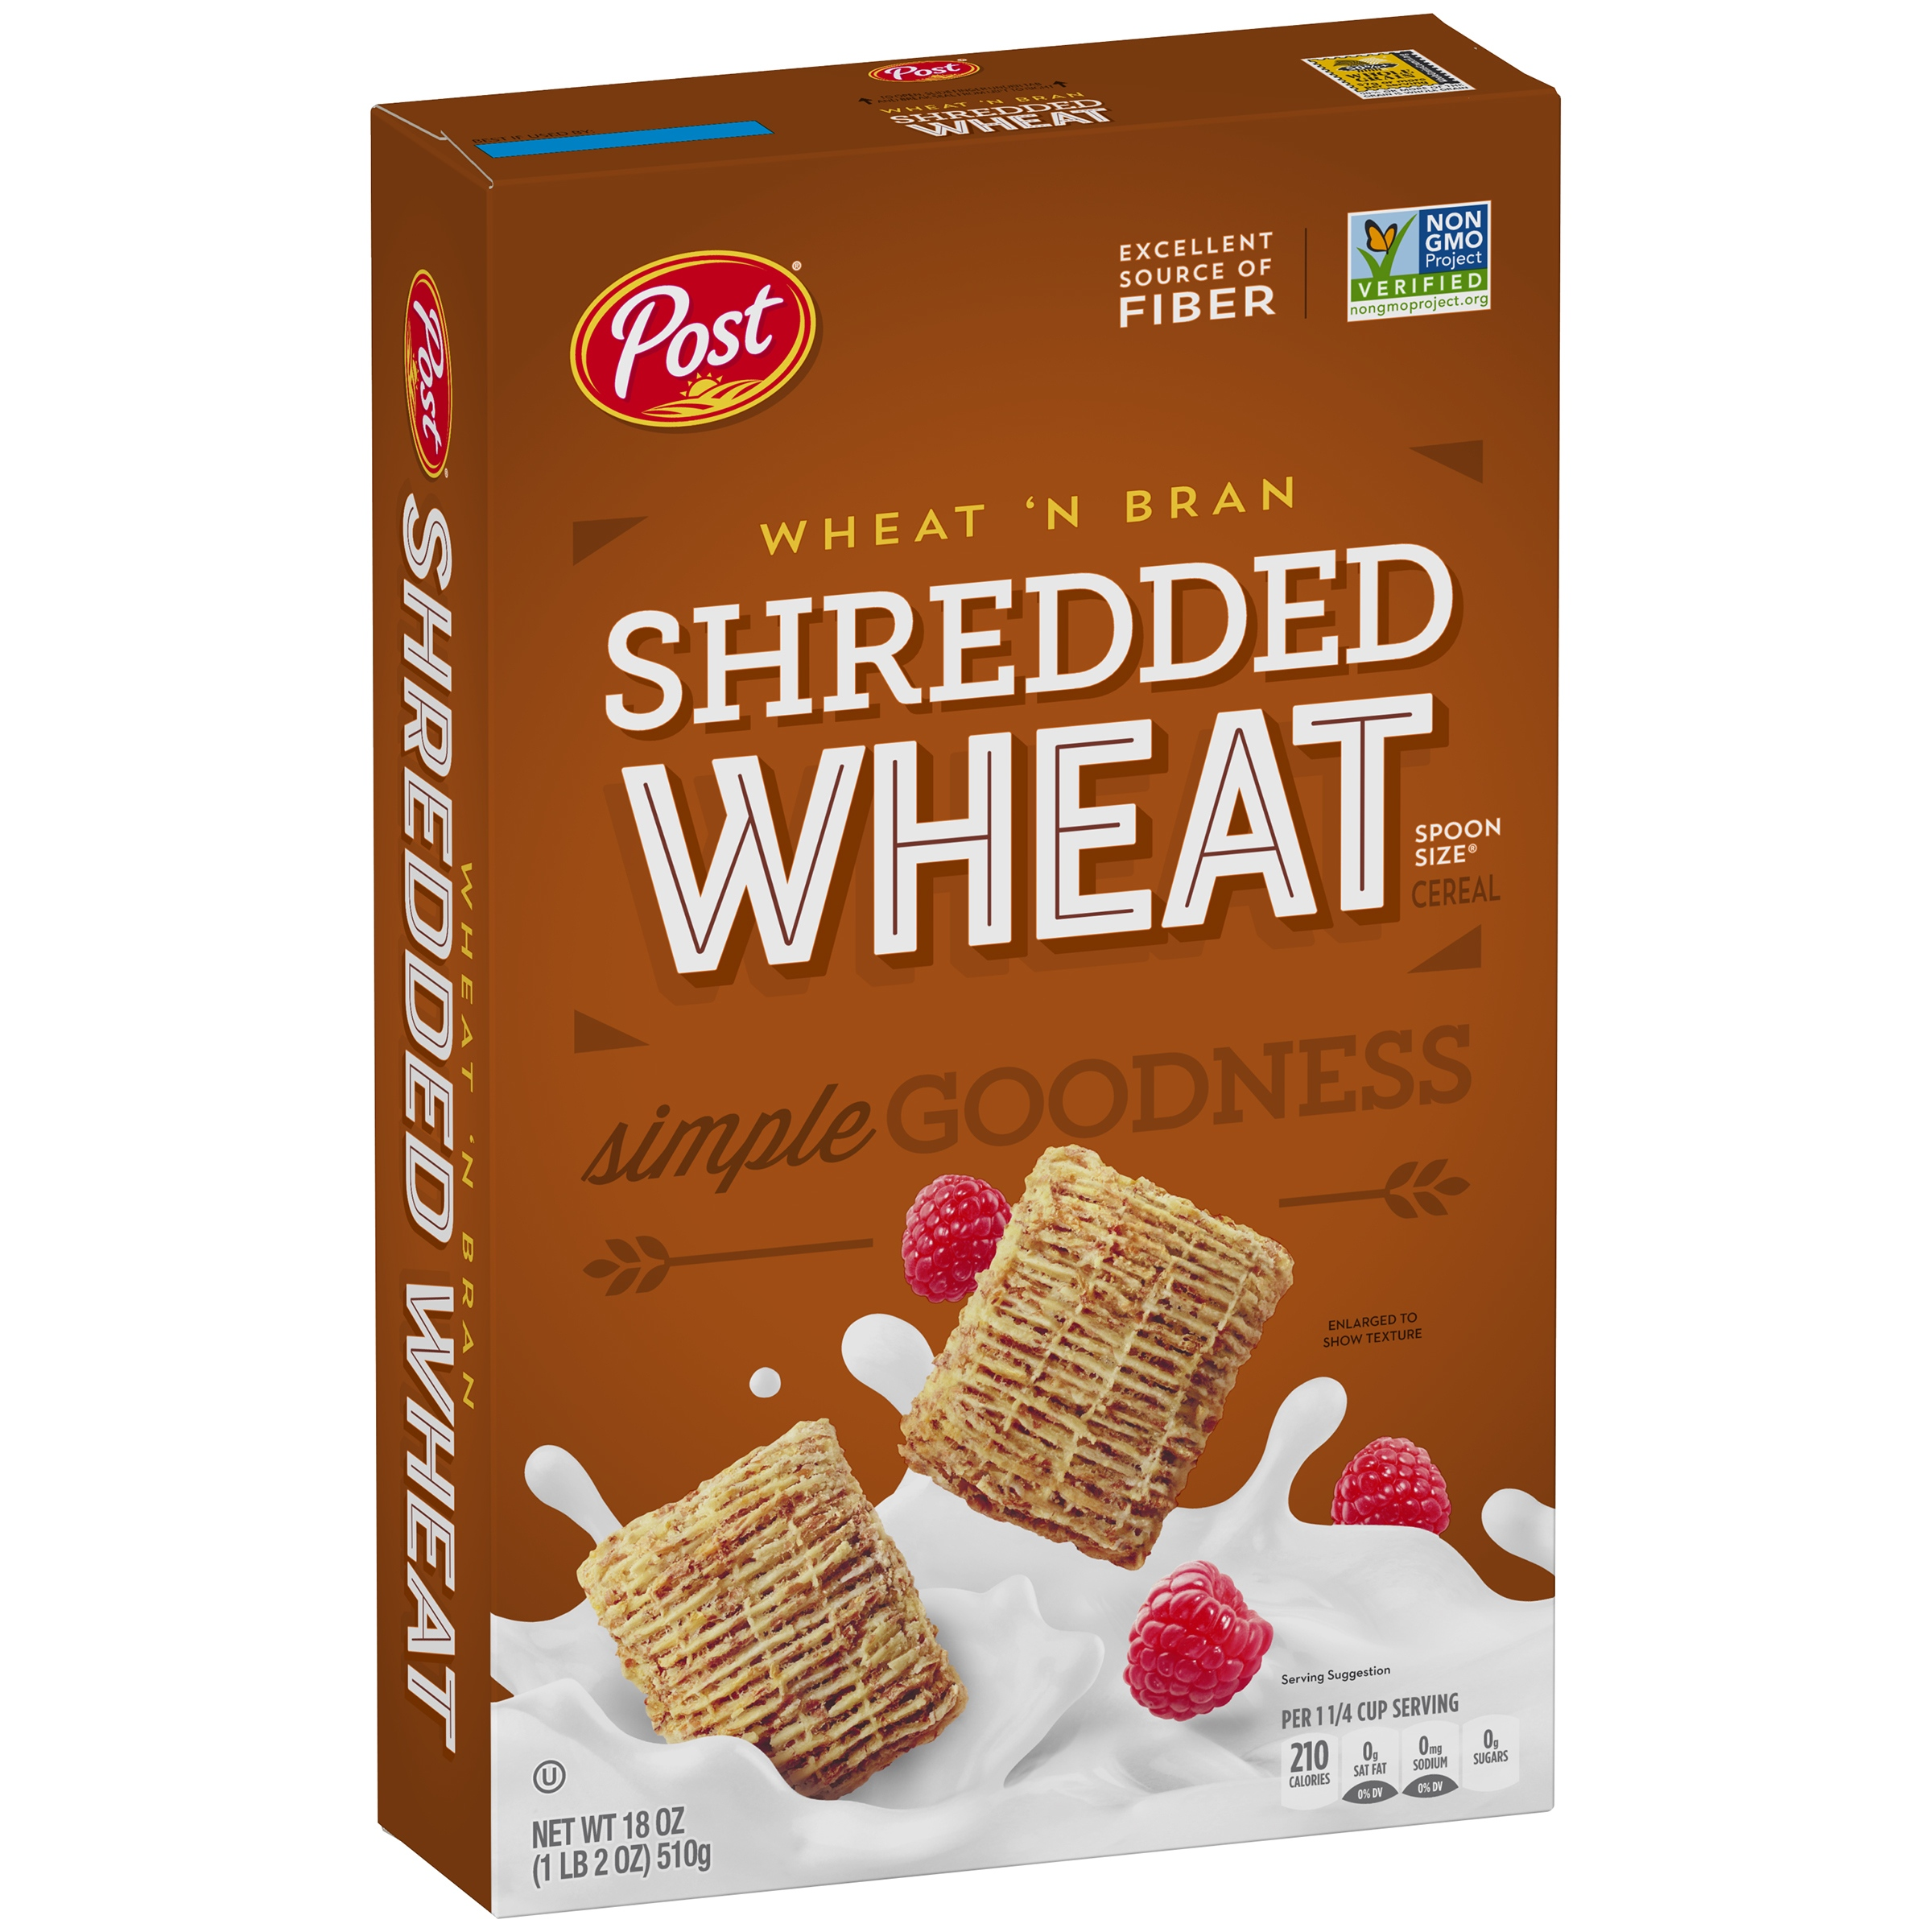 Post® Shredded Wheat Spoon Size® Wheat'n Bran Cereal 18 oz. Box